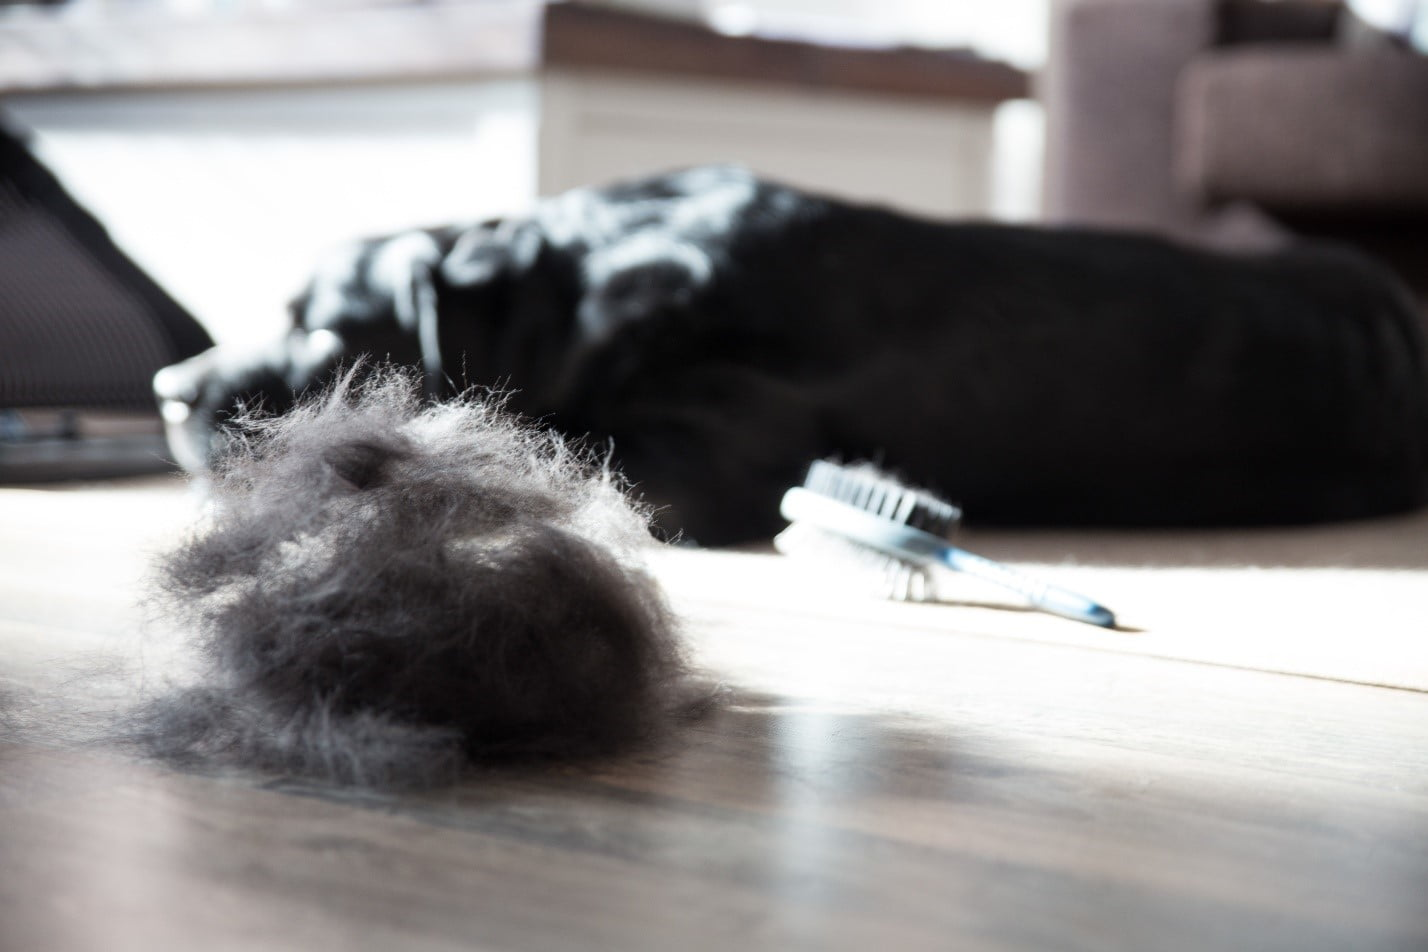 pile of pet hair on the floor next to dog after brushing in spring